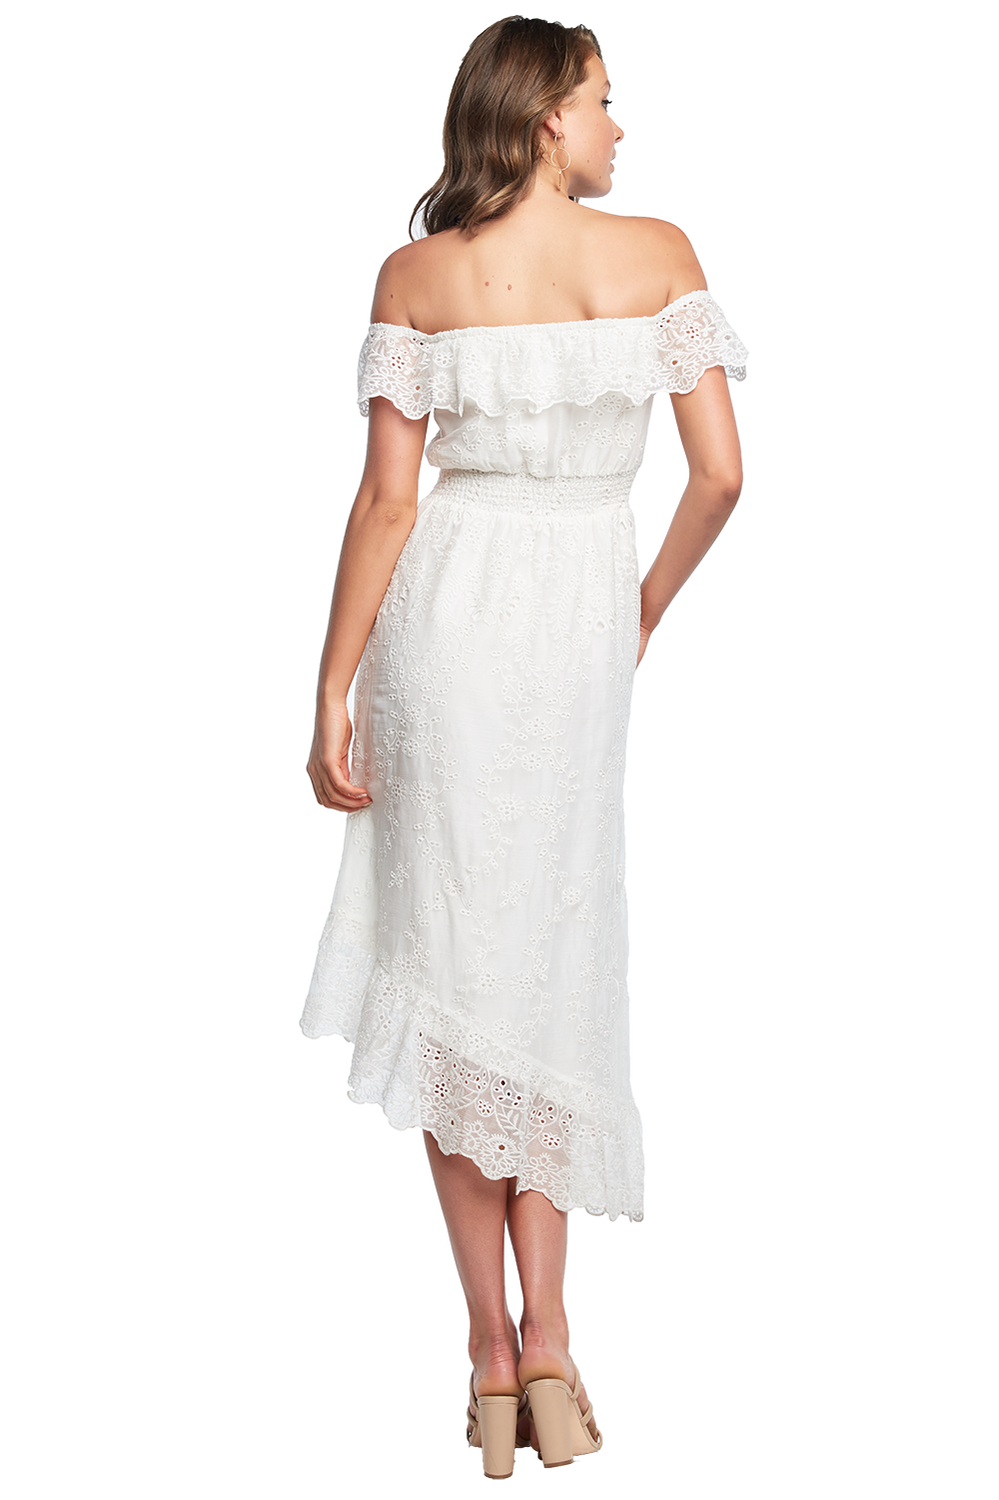 EMBROIDERY DRESS in colour CLOUD DANCER